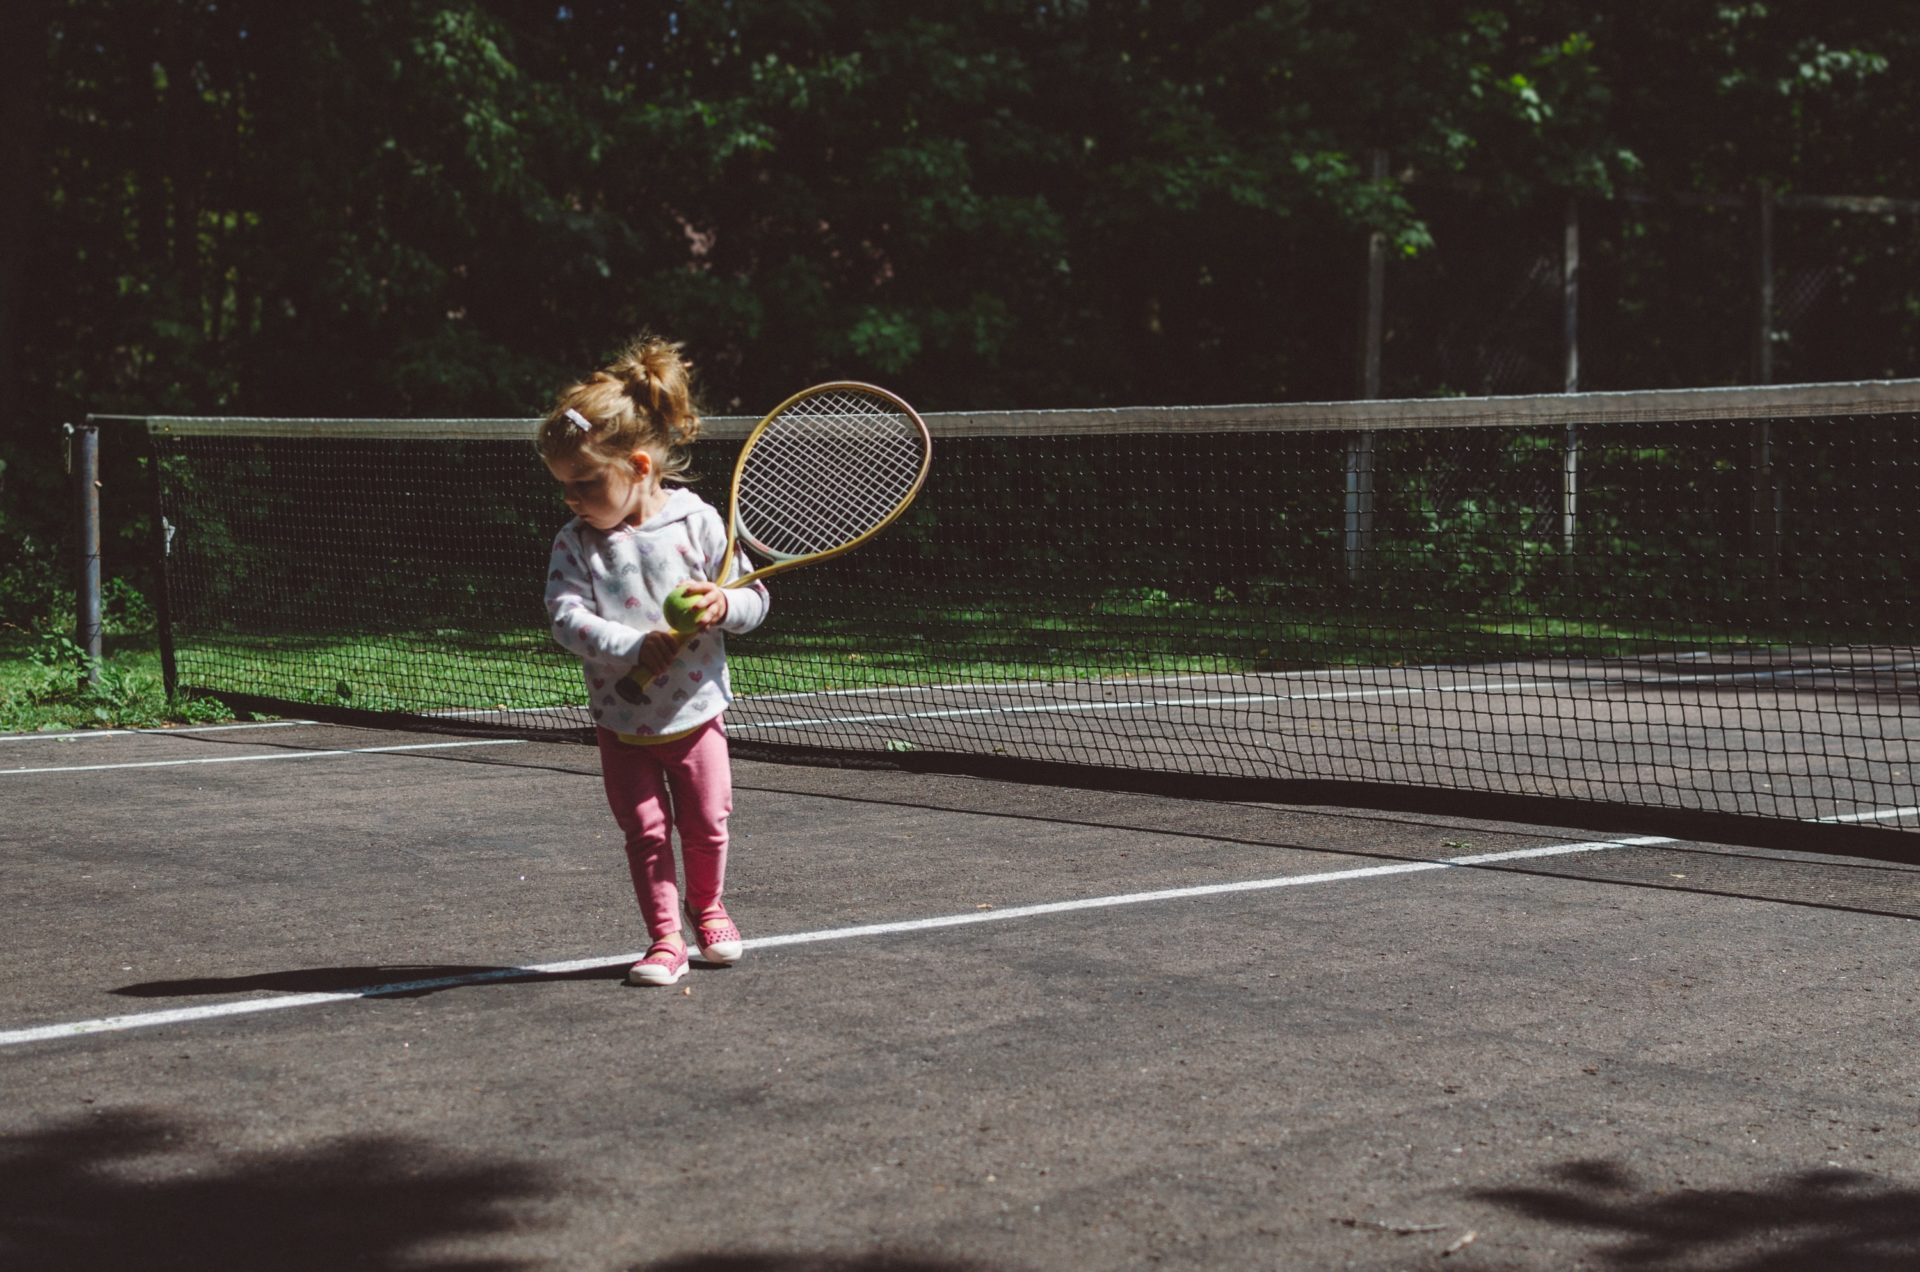 photo of child on tennis court by Kelly Sikkema on